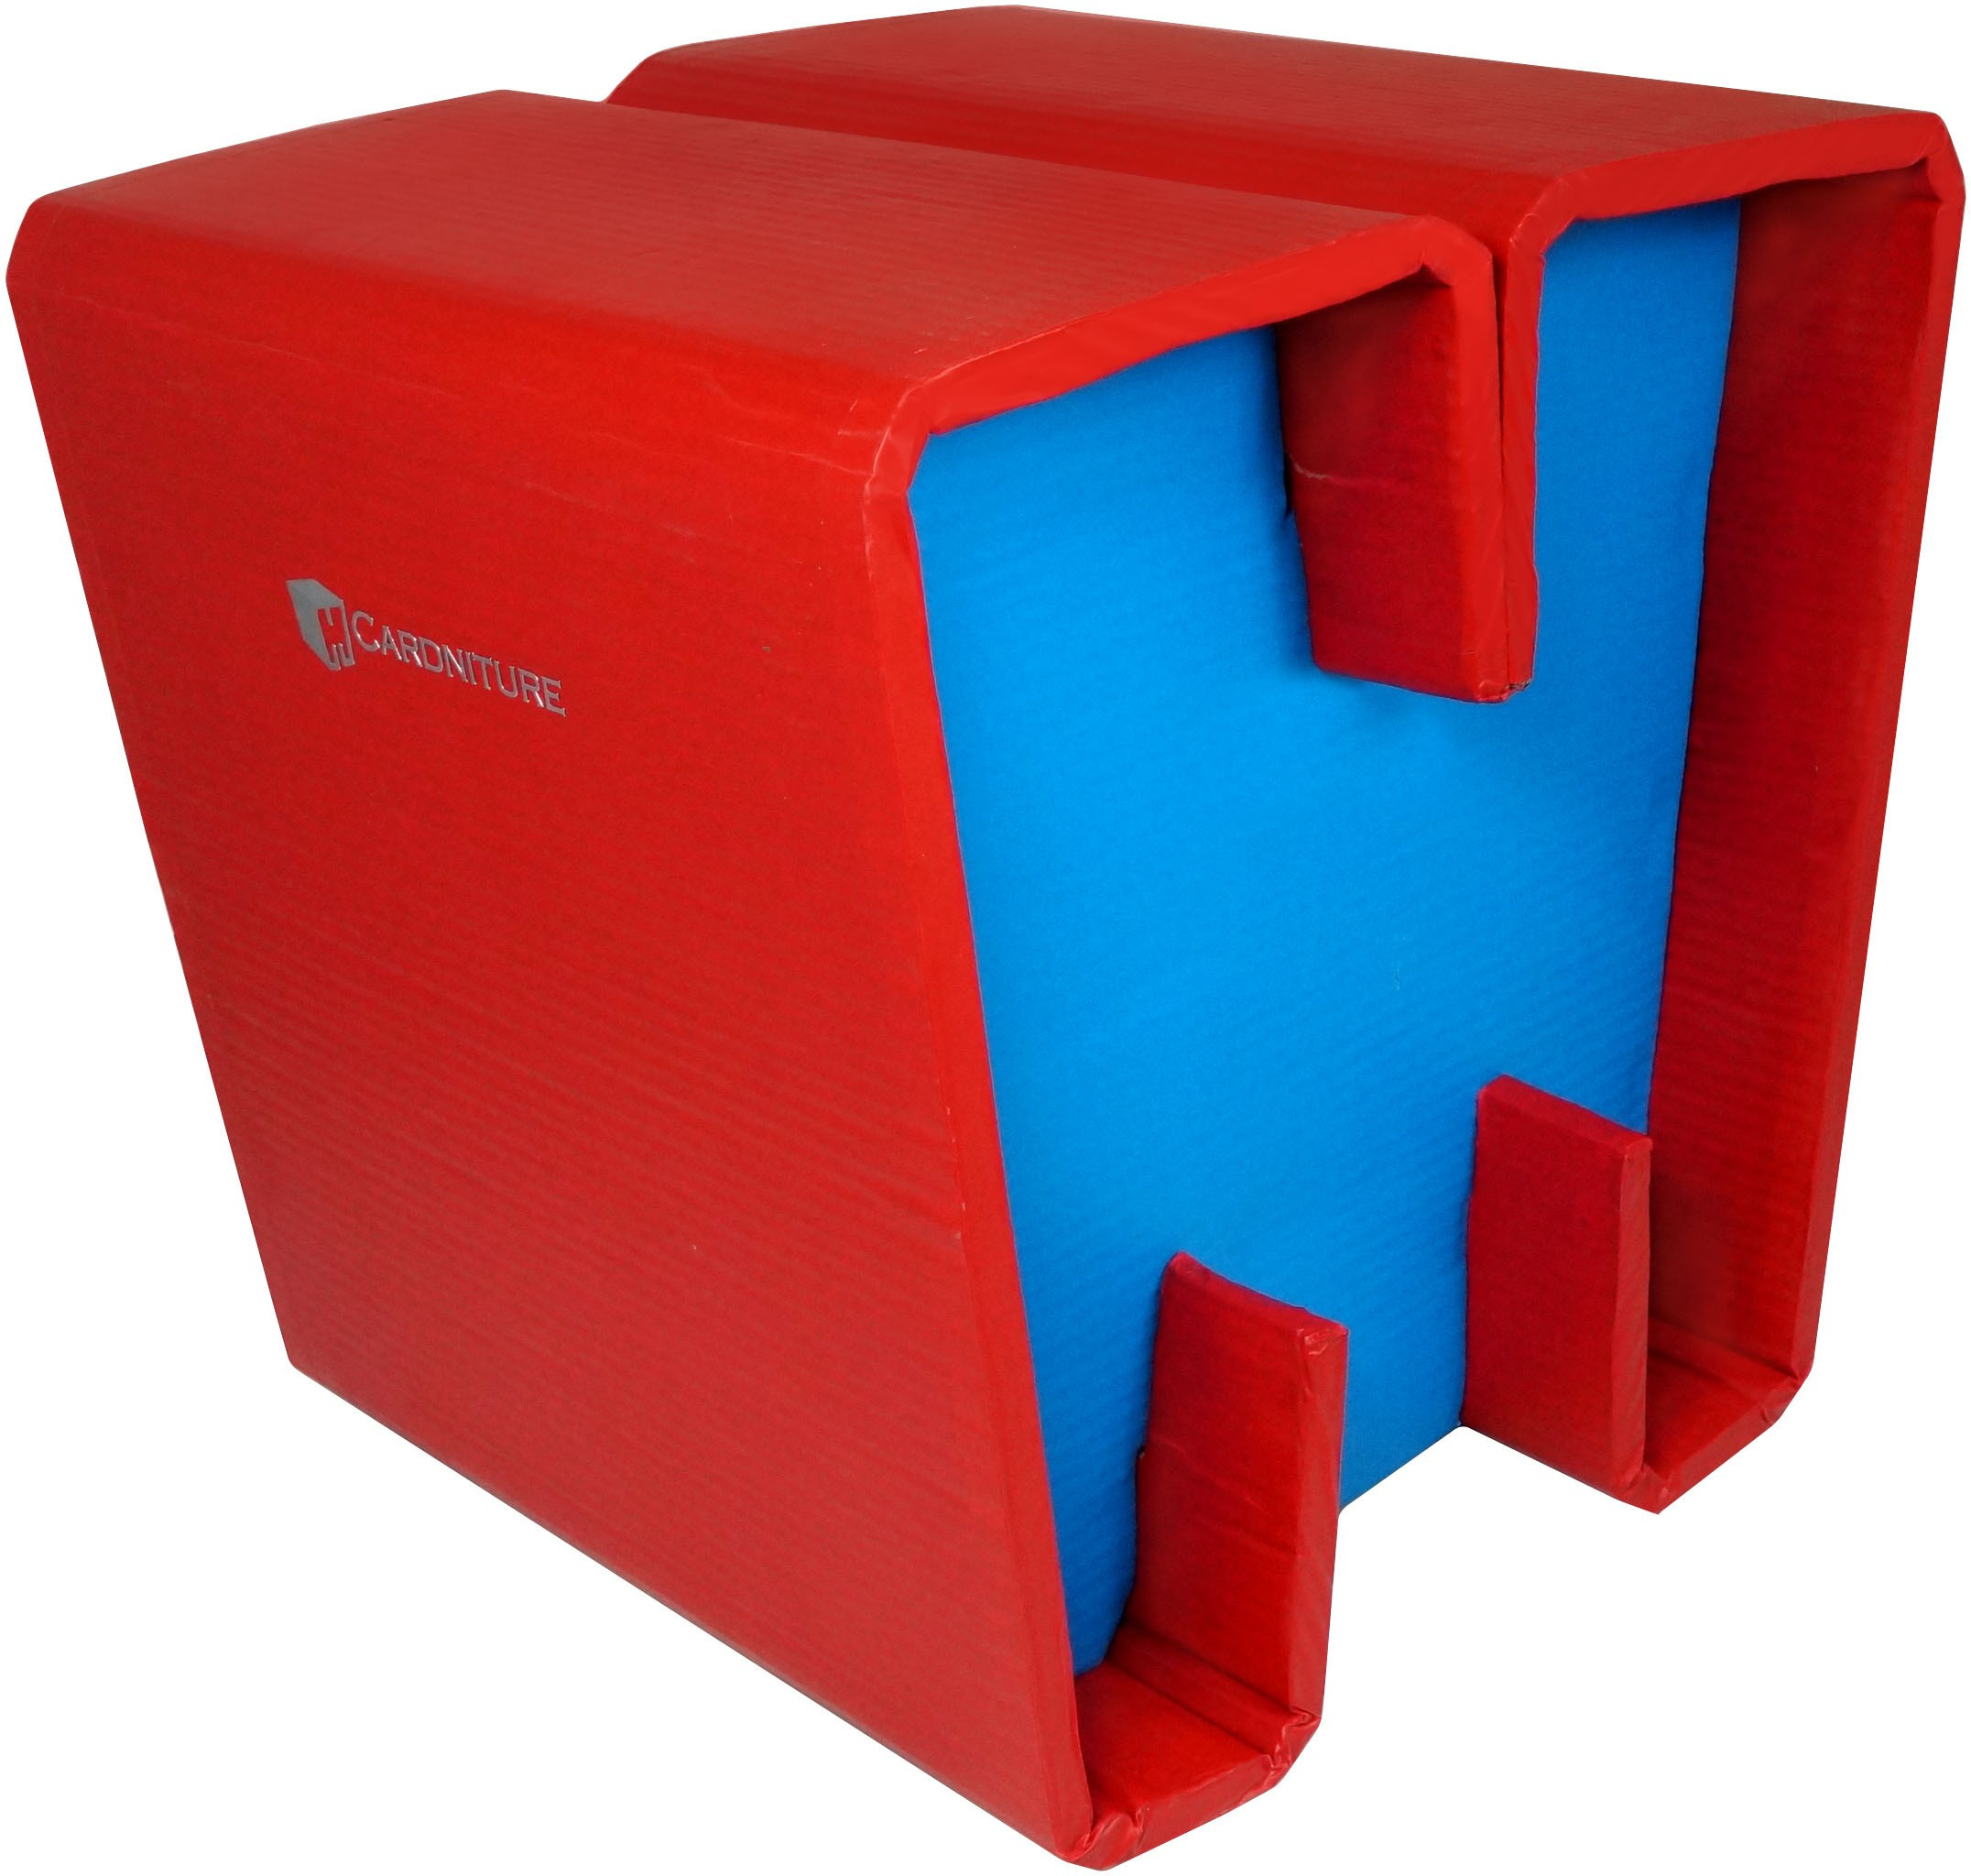 View Cardniture ZING Living & Bedroom Stool(Blue, Red) Furniture (Cardniture)